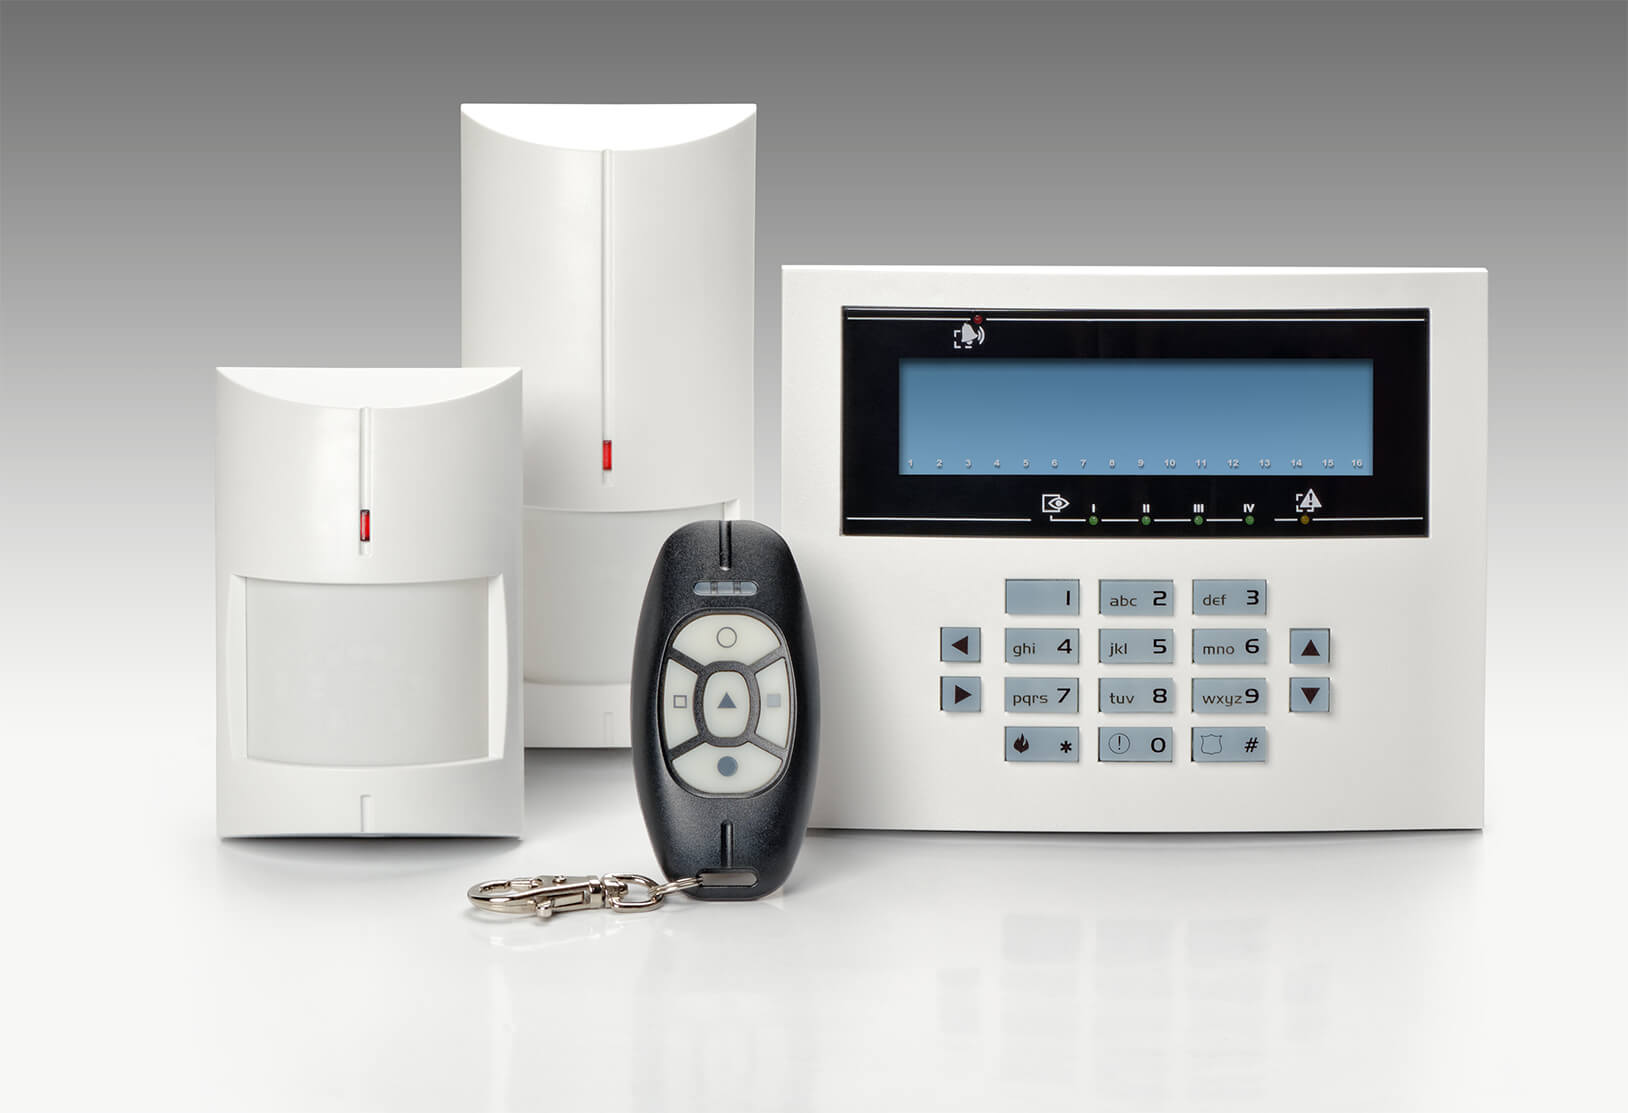 Business & Residential NACOSS Approved Burglar Alarms In Hornsey N10 - Local Hornsey N10 security company.Call 02078872244 - Dedicated to Safety & Security. Companies, shops and homes ..